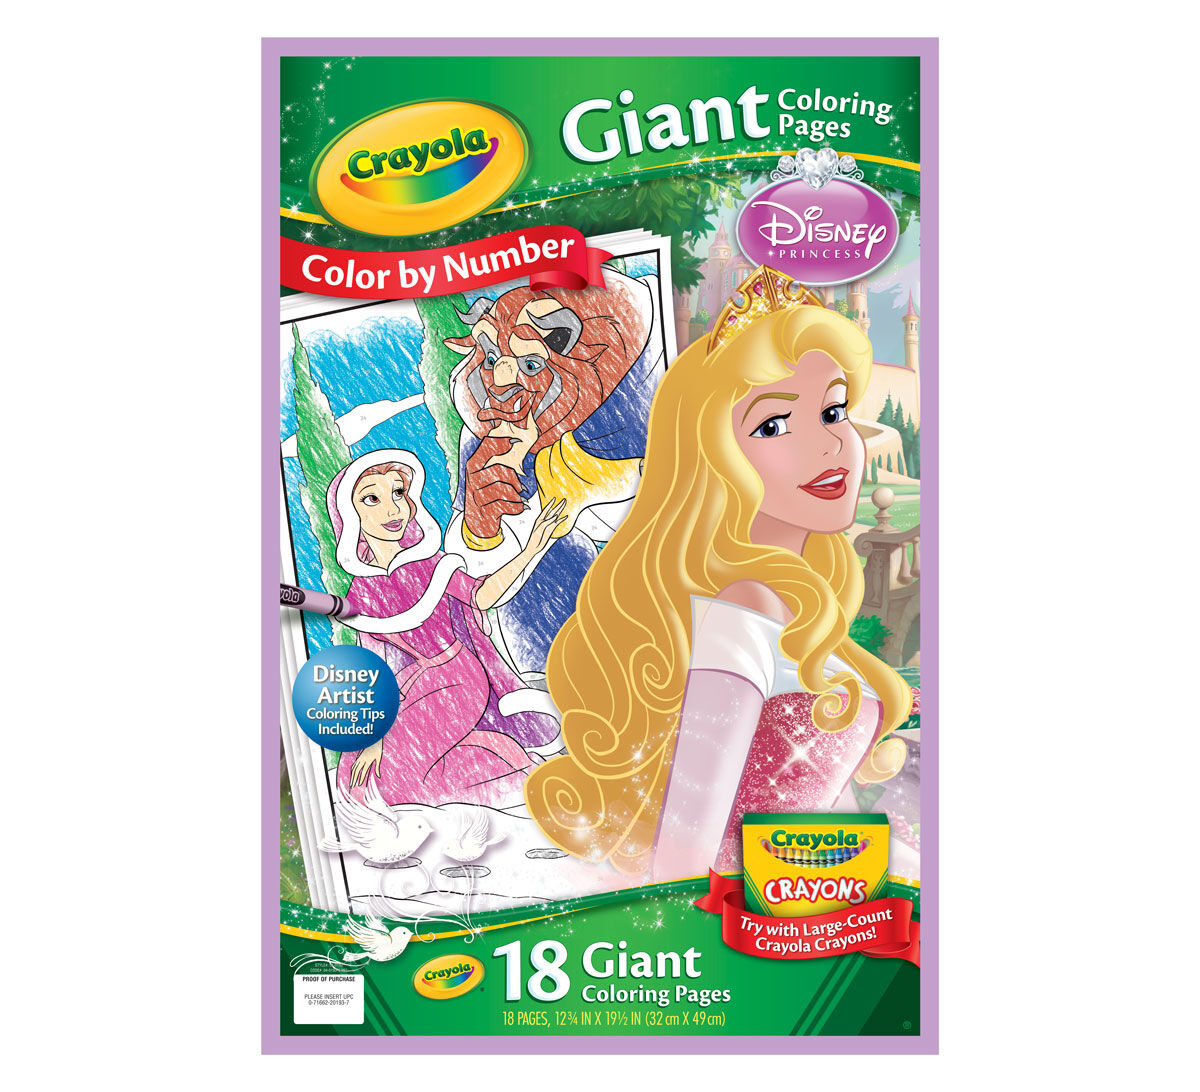 Giant Coloring Pages Disney Princess Crayola Crayola Coloring Pages